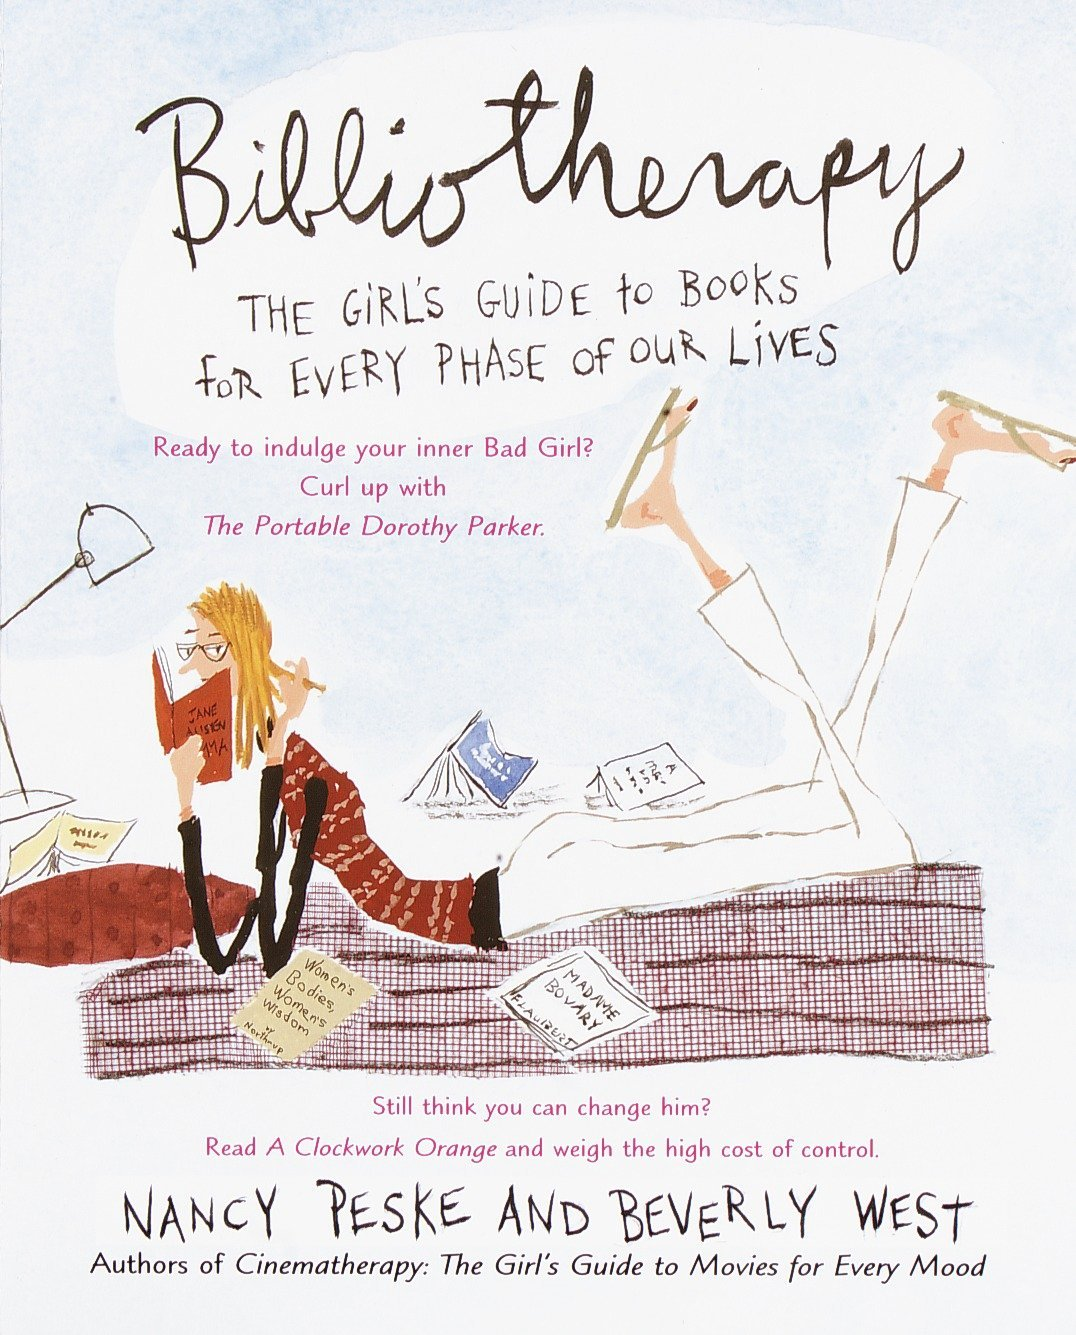 Bibliotherapy: The Girl's Guide to Books for Every Phase of Our Lives:  Beverly West, Nancy Peske: 9780440508977: Amazon.com: Books